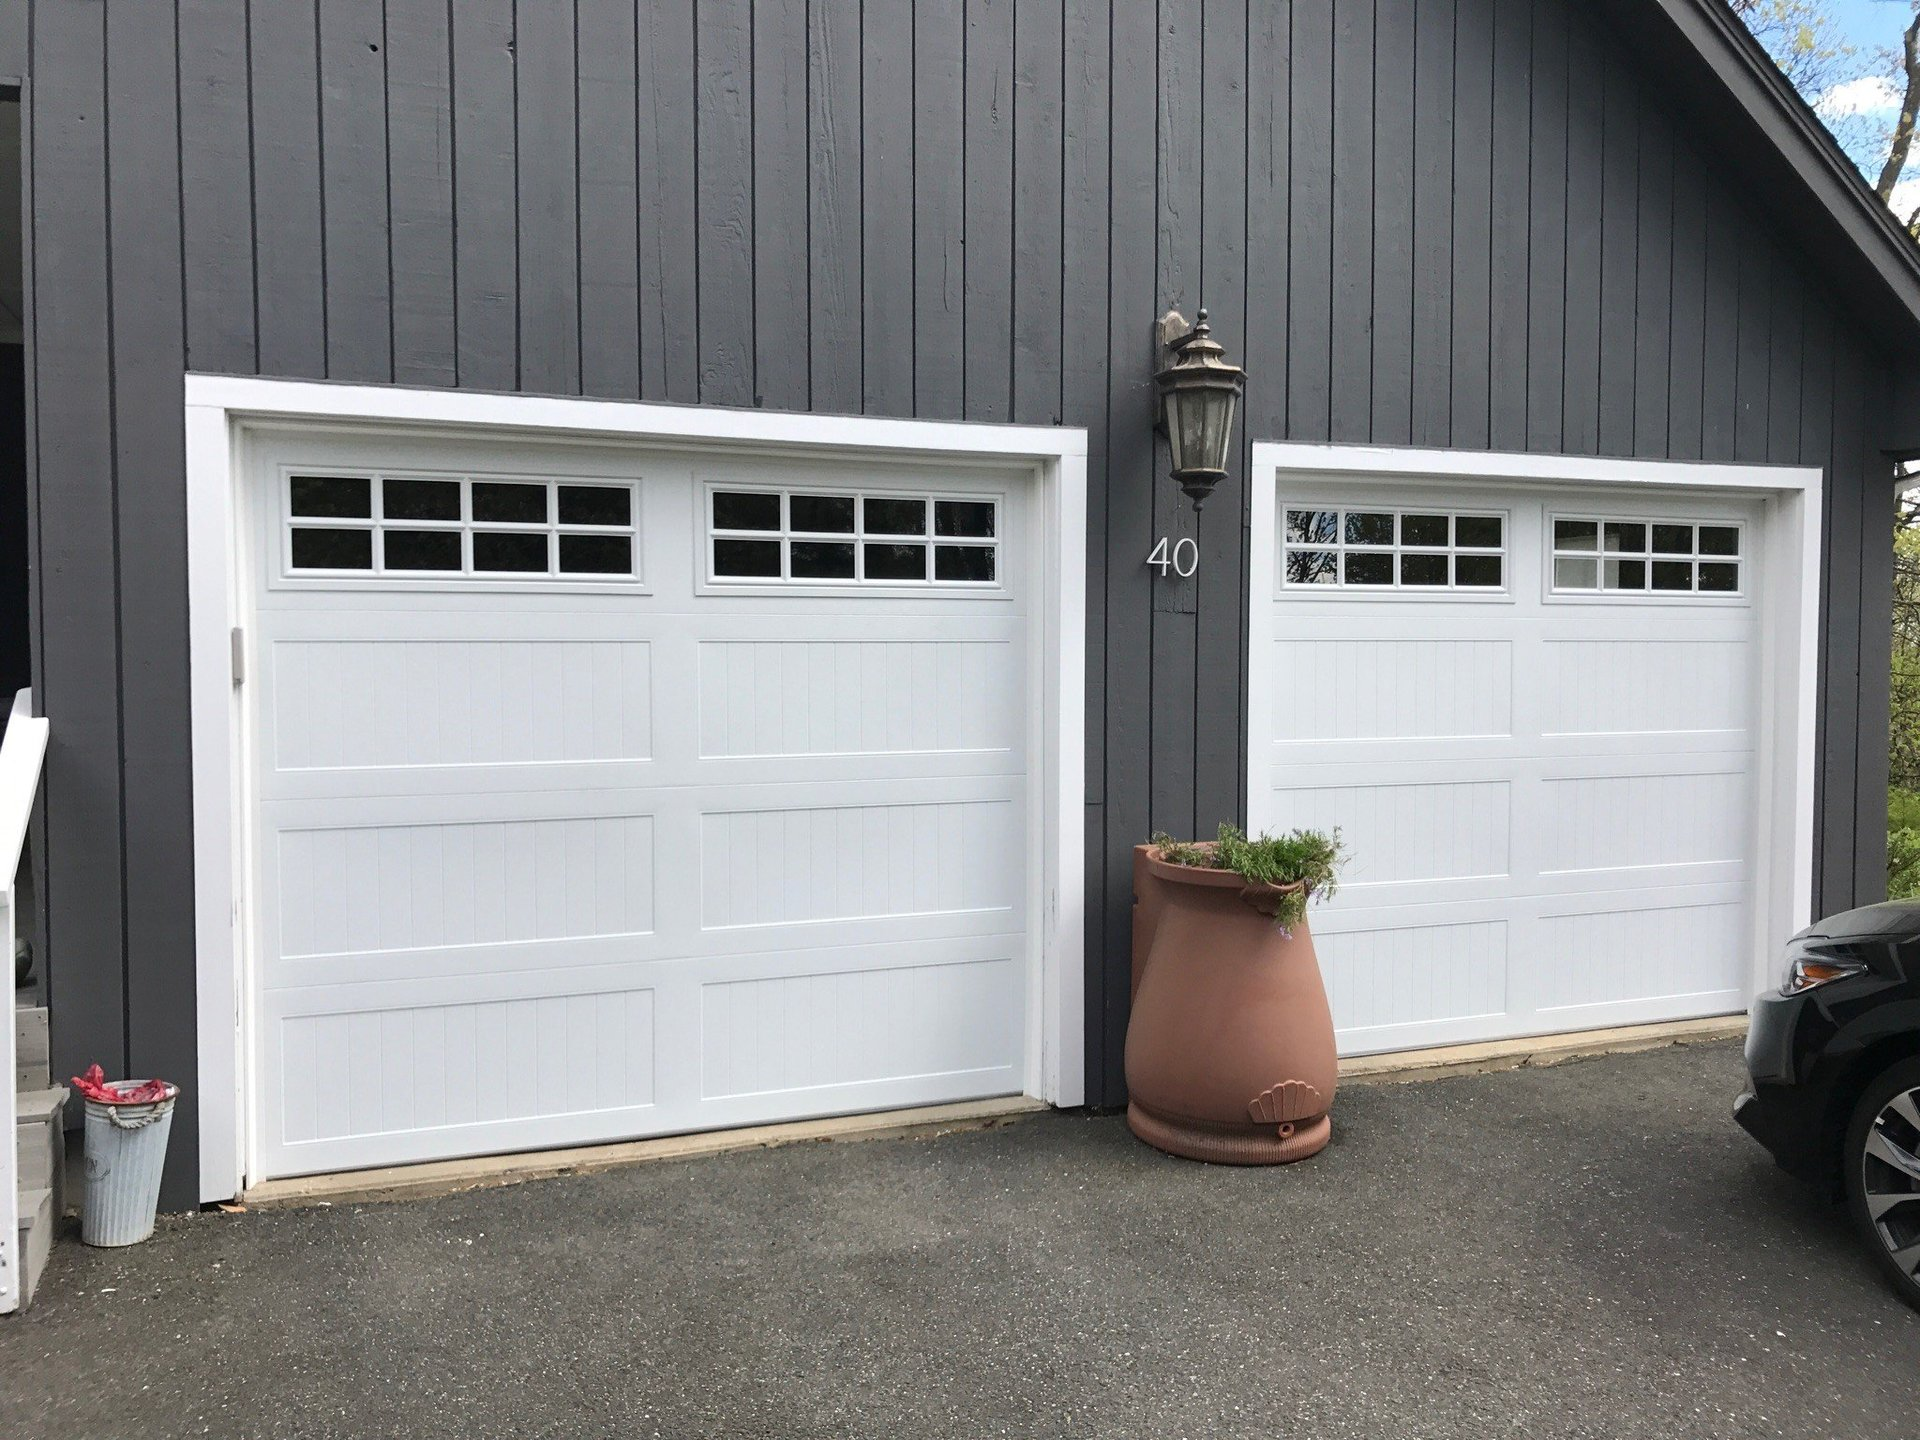 Delicieux Garage Door Repair Trumbull, CT